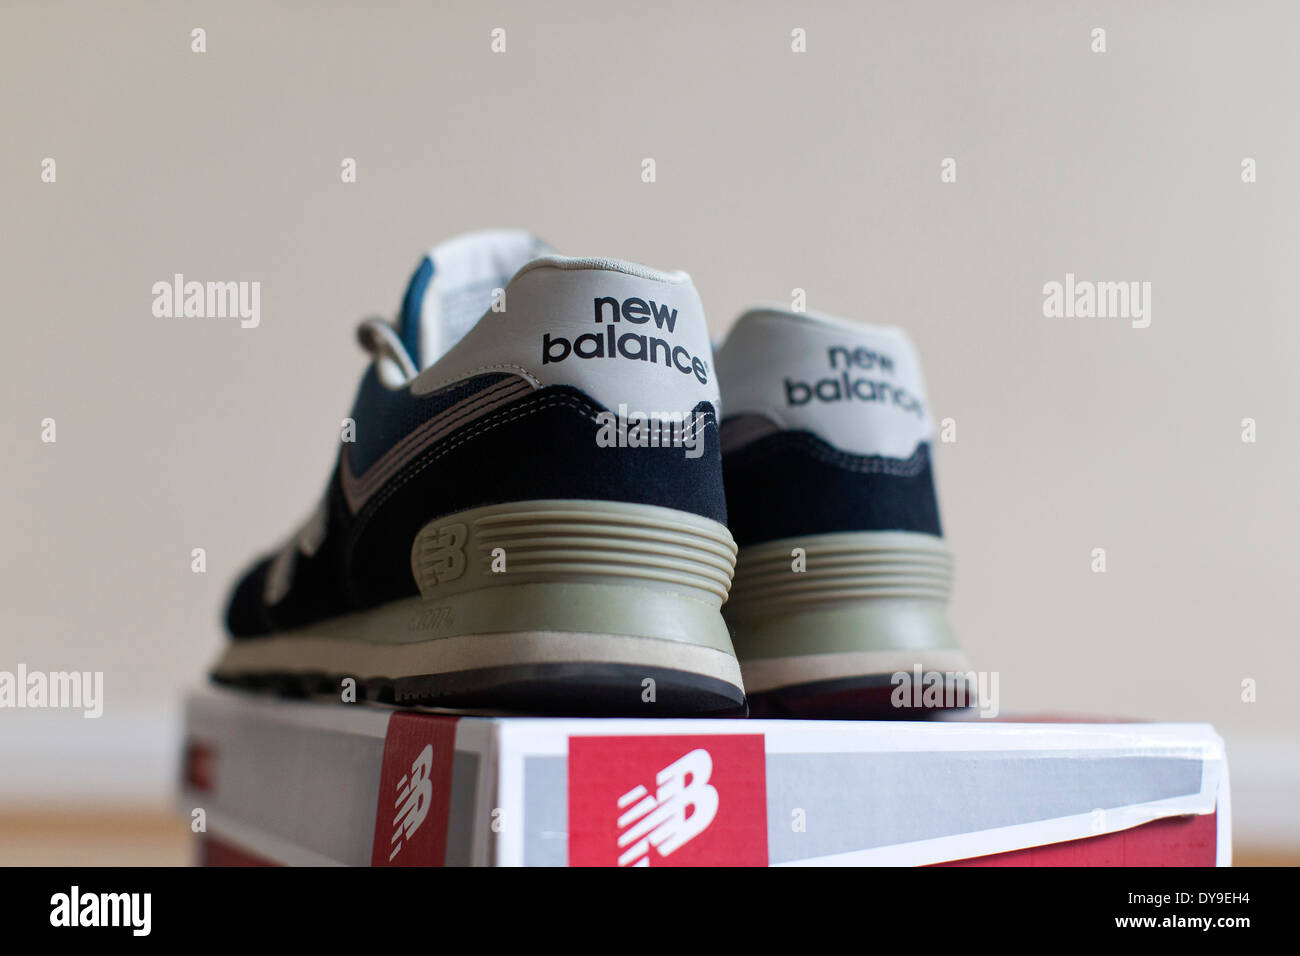 New Balance Alamy Photos amp; Images rxrSfXq1w